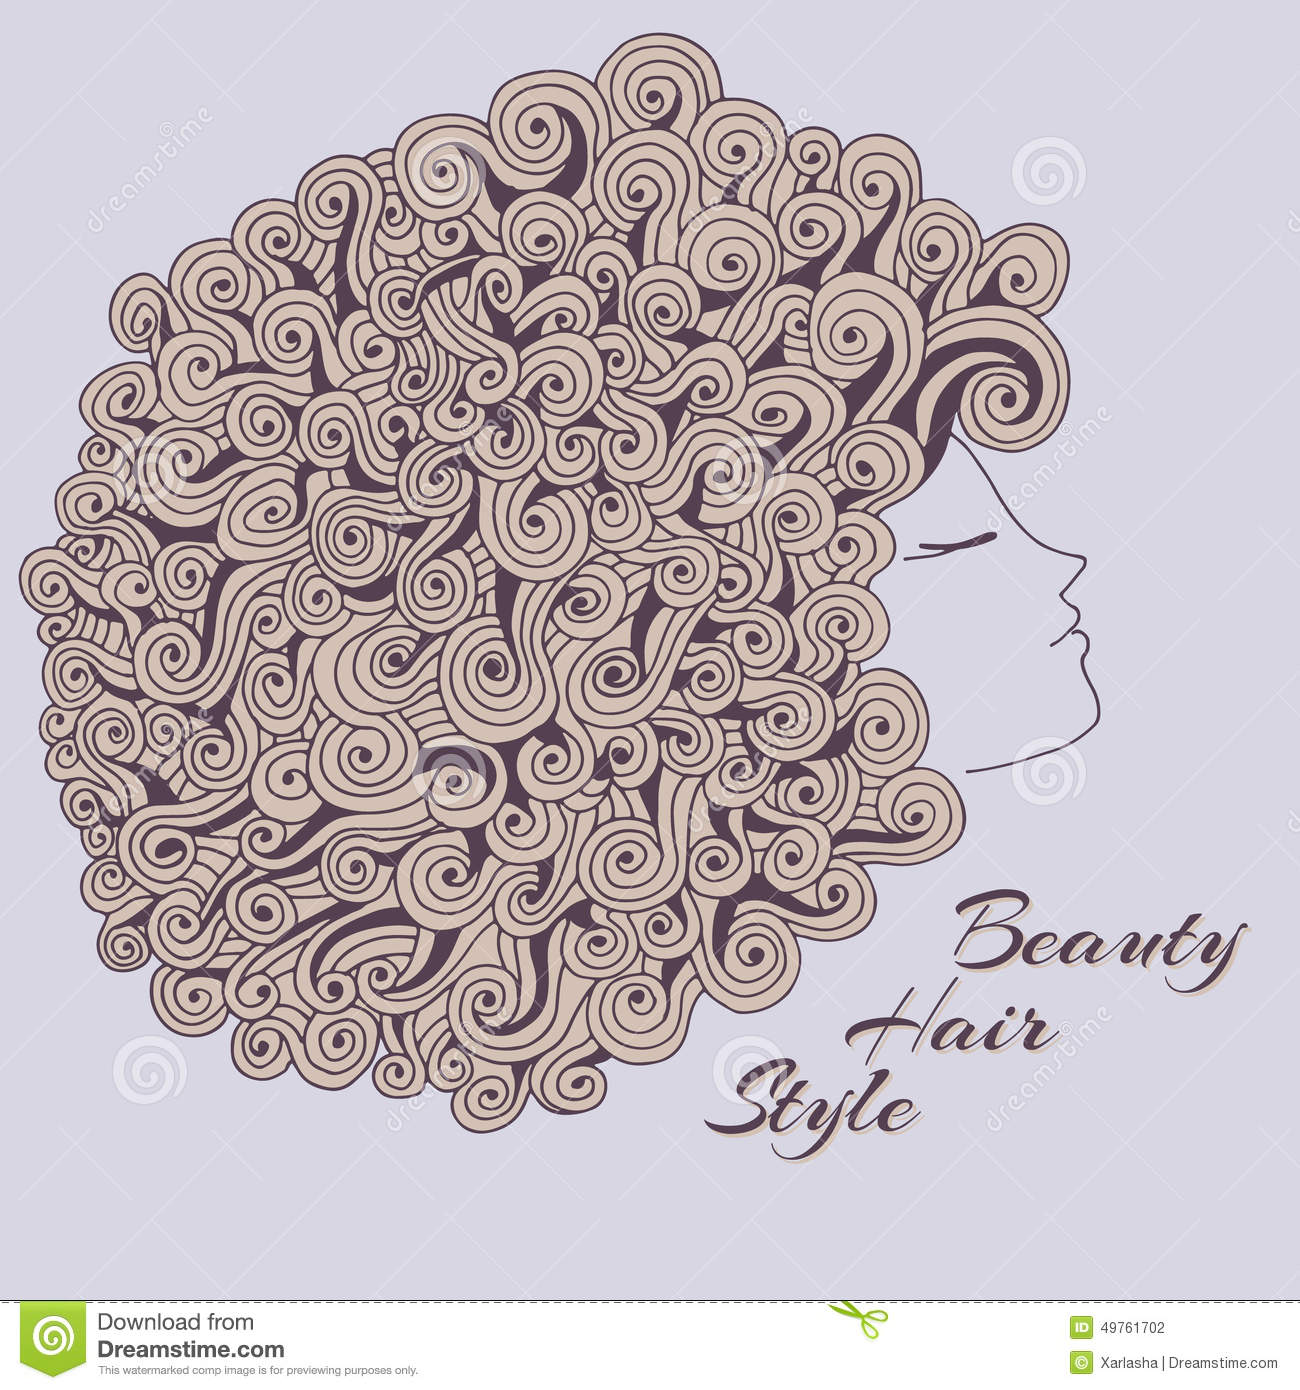 Sensational Curly Girl Stock Vector Image 49761702 Short Hairstyles Gunalazisus